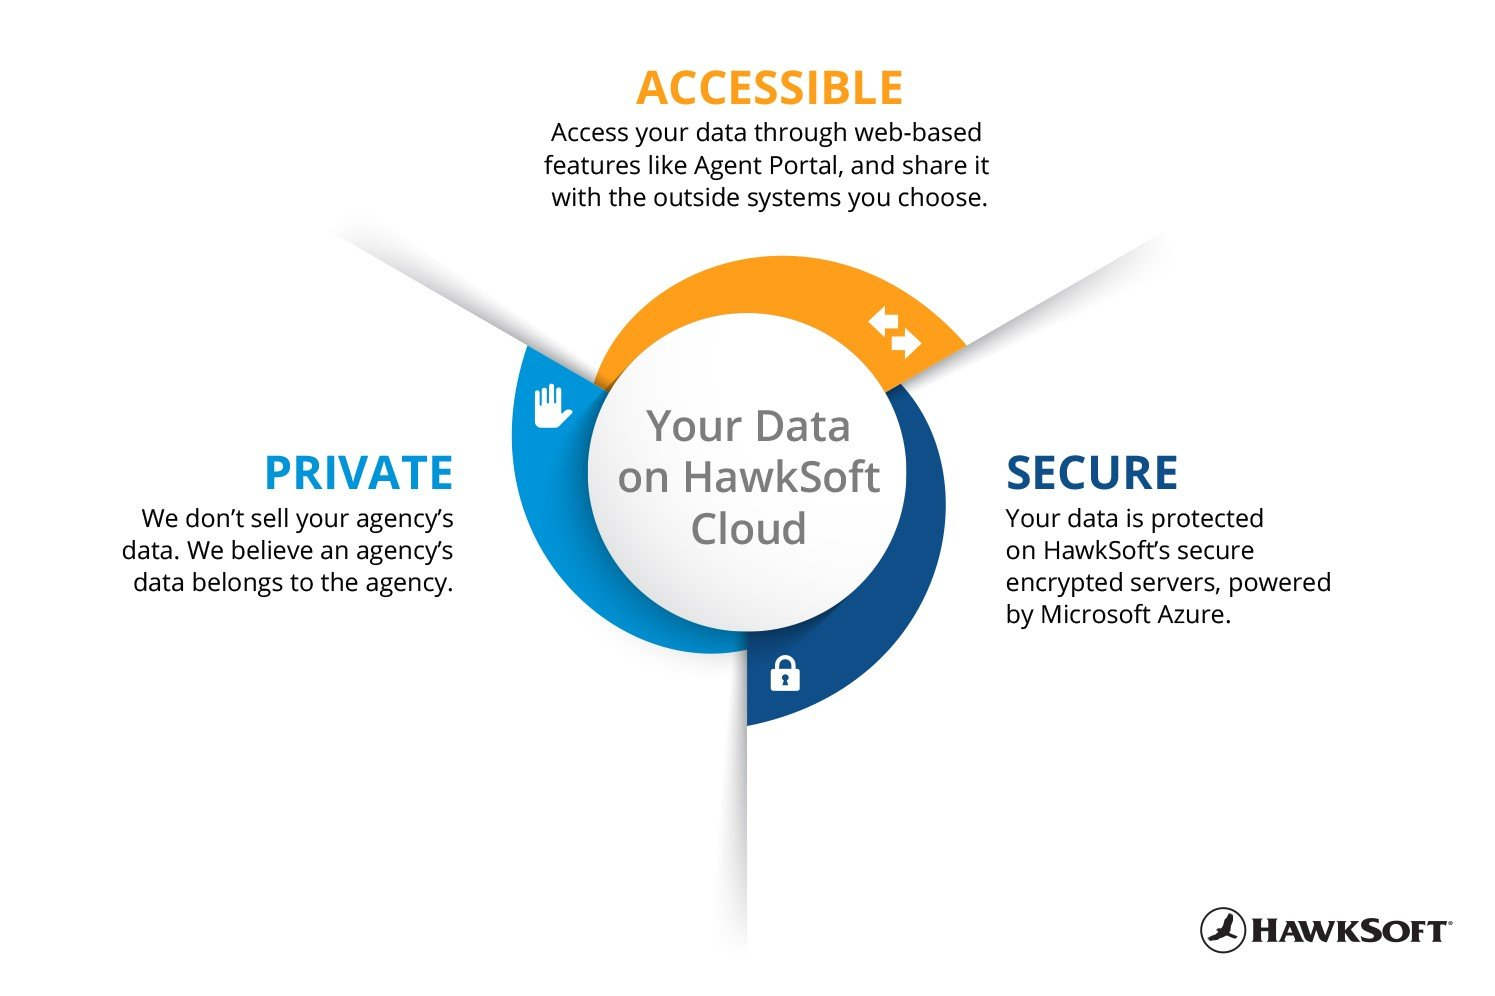 HawkSoft Cloud Data - Accessible, Secure, Private